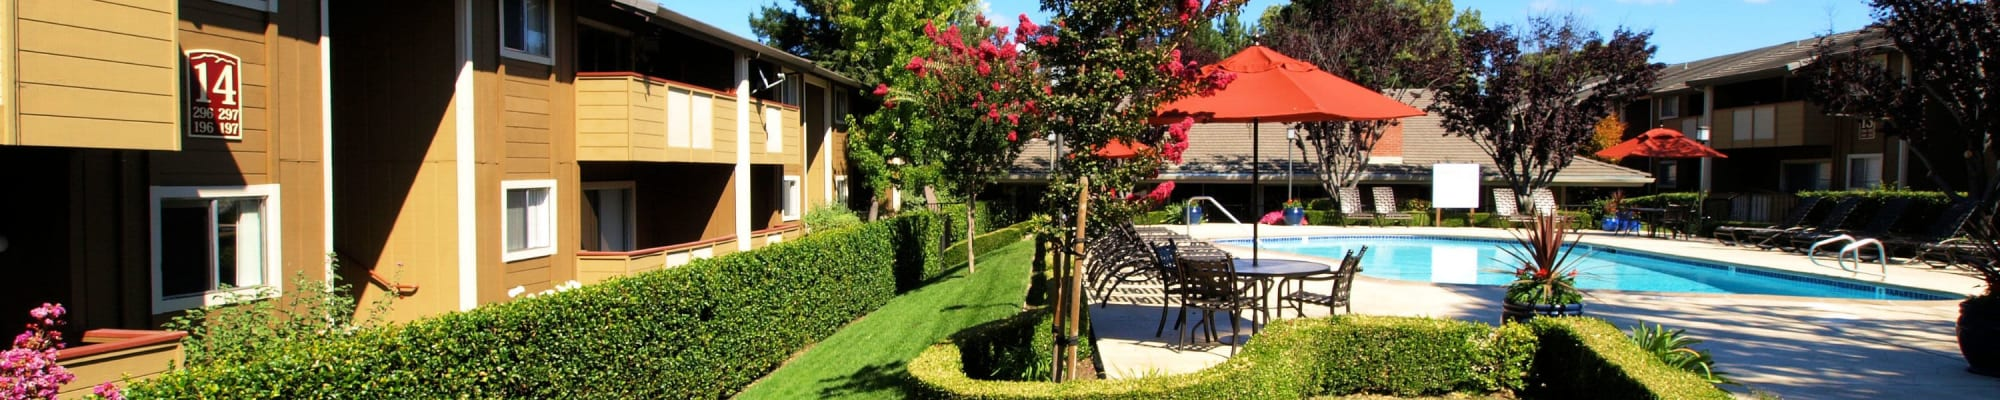 Amenities at Shadow Oaks Apartment Homes in Cupertino, California